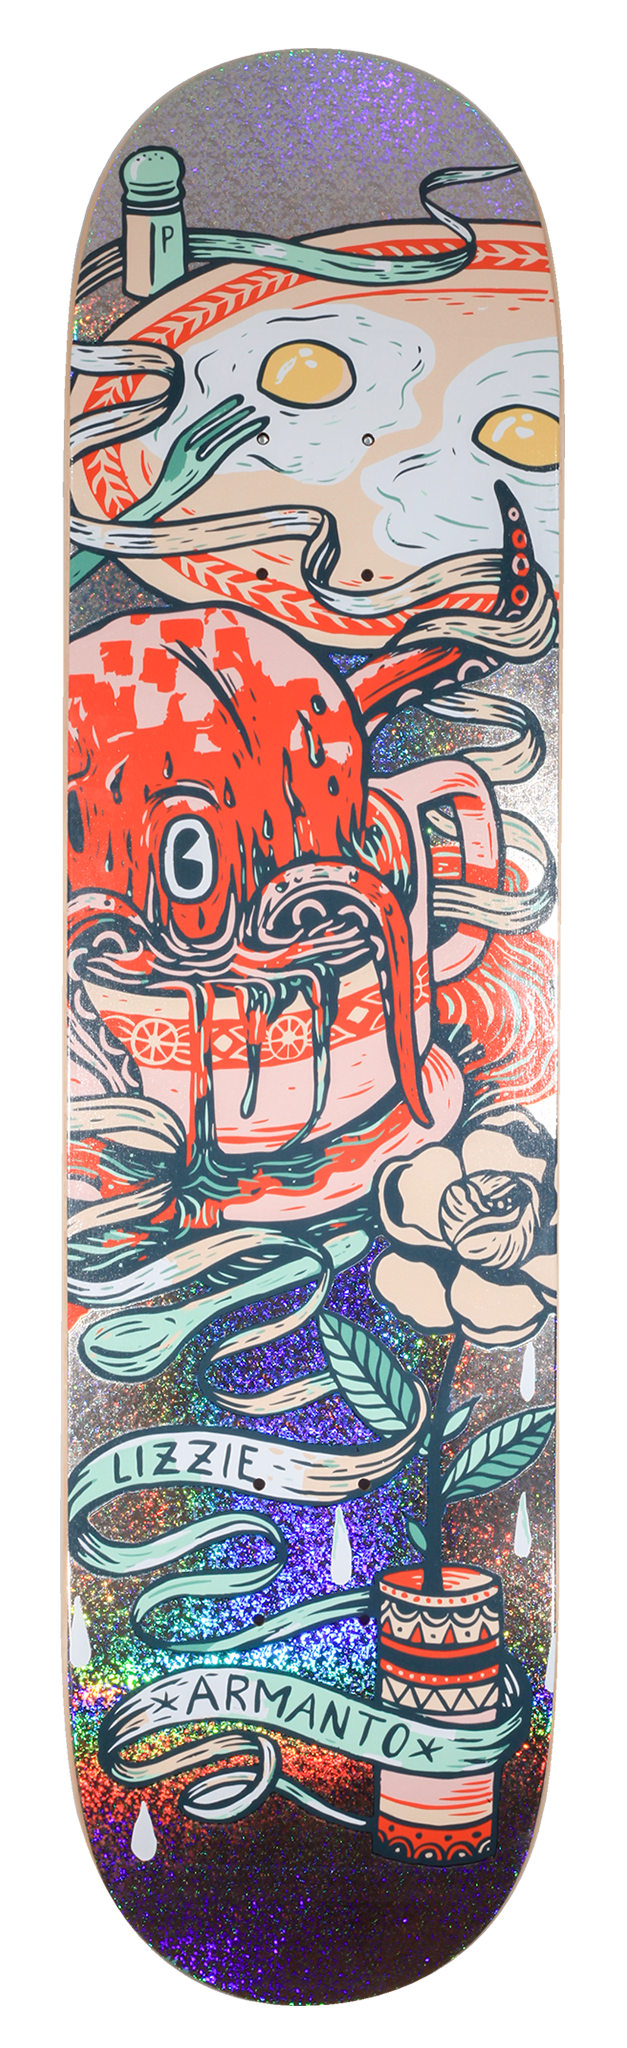 Drawing skateboard deck. Birdhouse lizzie armanto limited